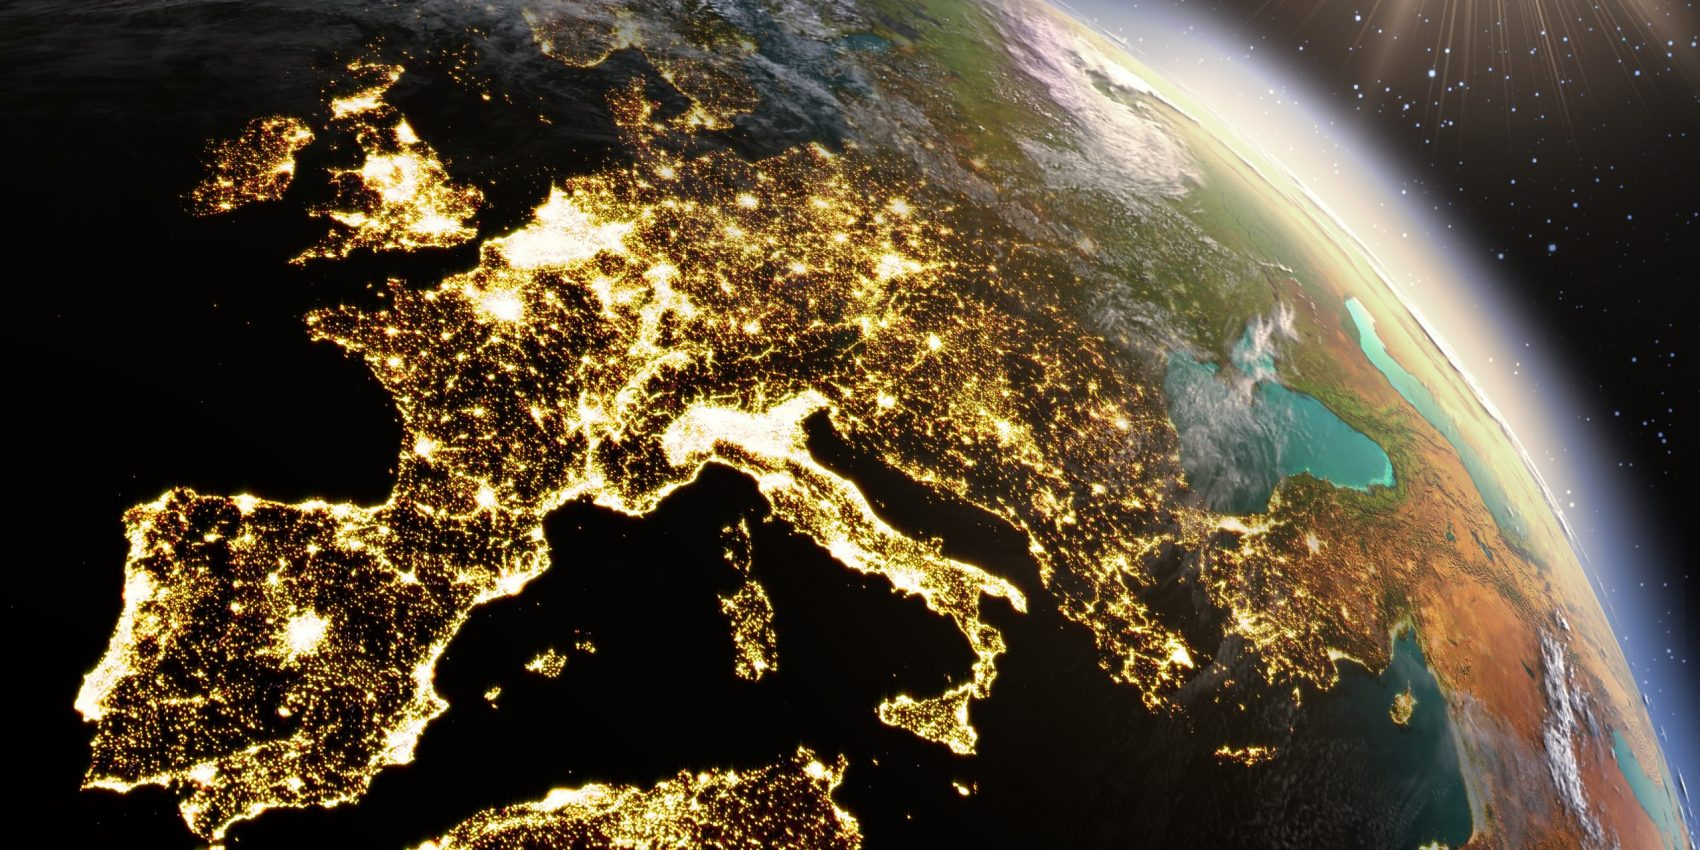 Planet Earth Europe zone. Elements of this image furnished by NASA